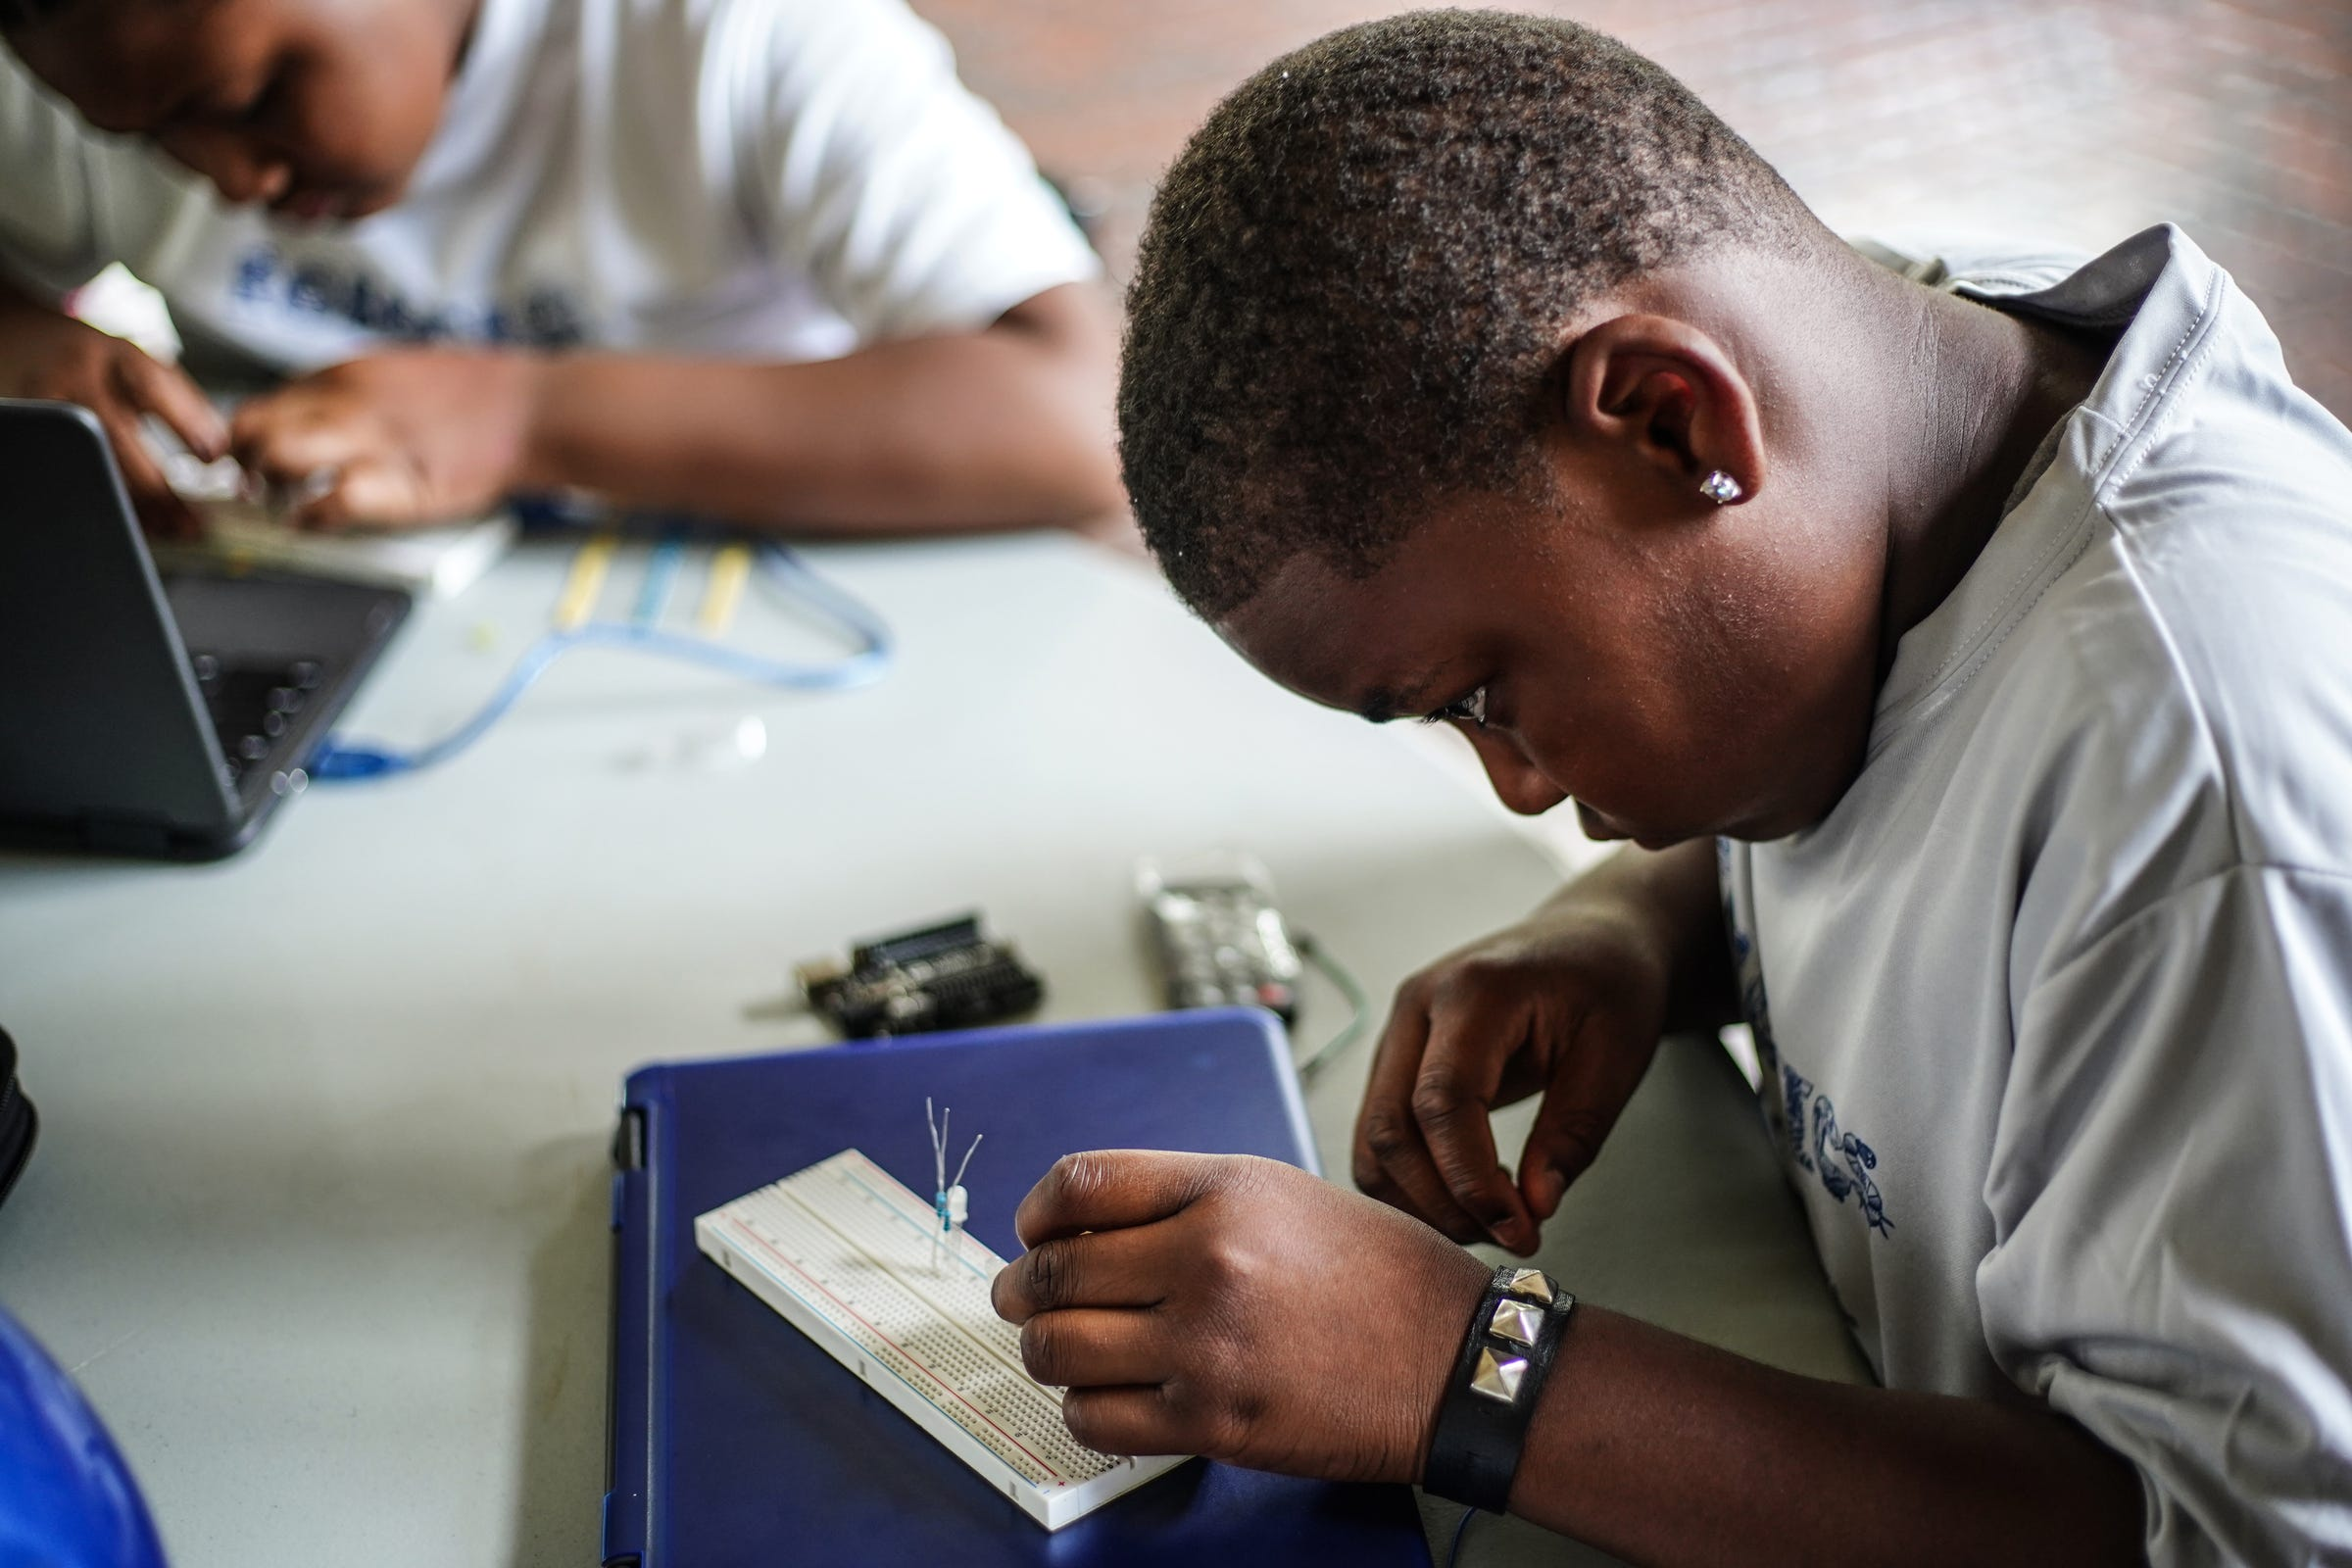 Dion Reaves, 8, of Detroit works on robotics project at Marygrove College in Detroit on July 29, 2021. Detroit City Lions, a youth program founded by Devon Buskin is more than a youth football program. The program offers robotics classes, volleyball, musical arts along with football and cheer.